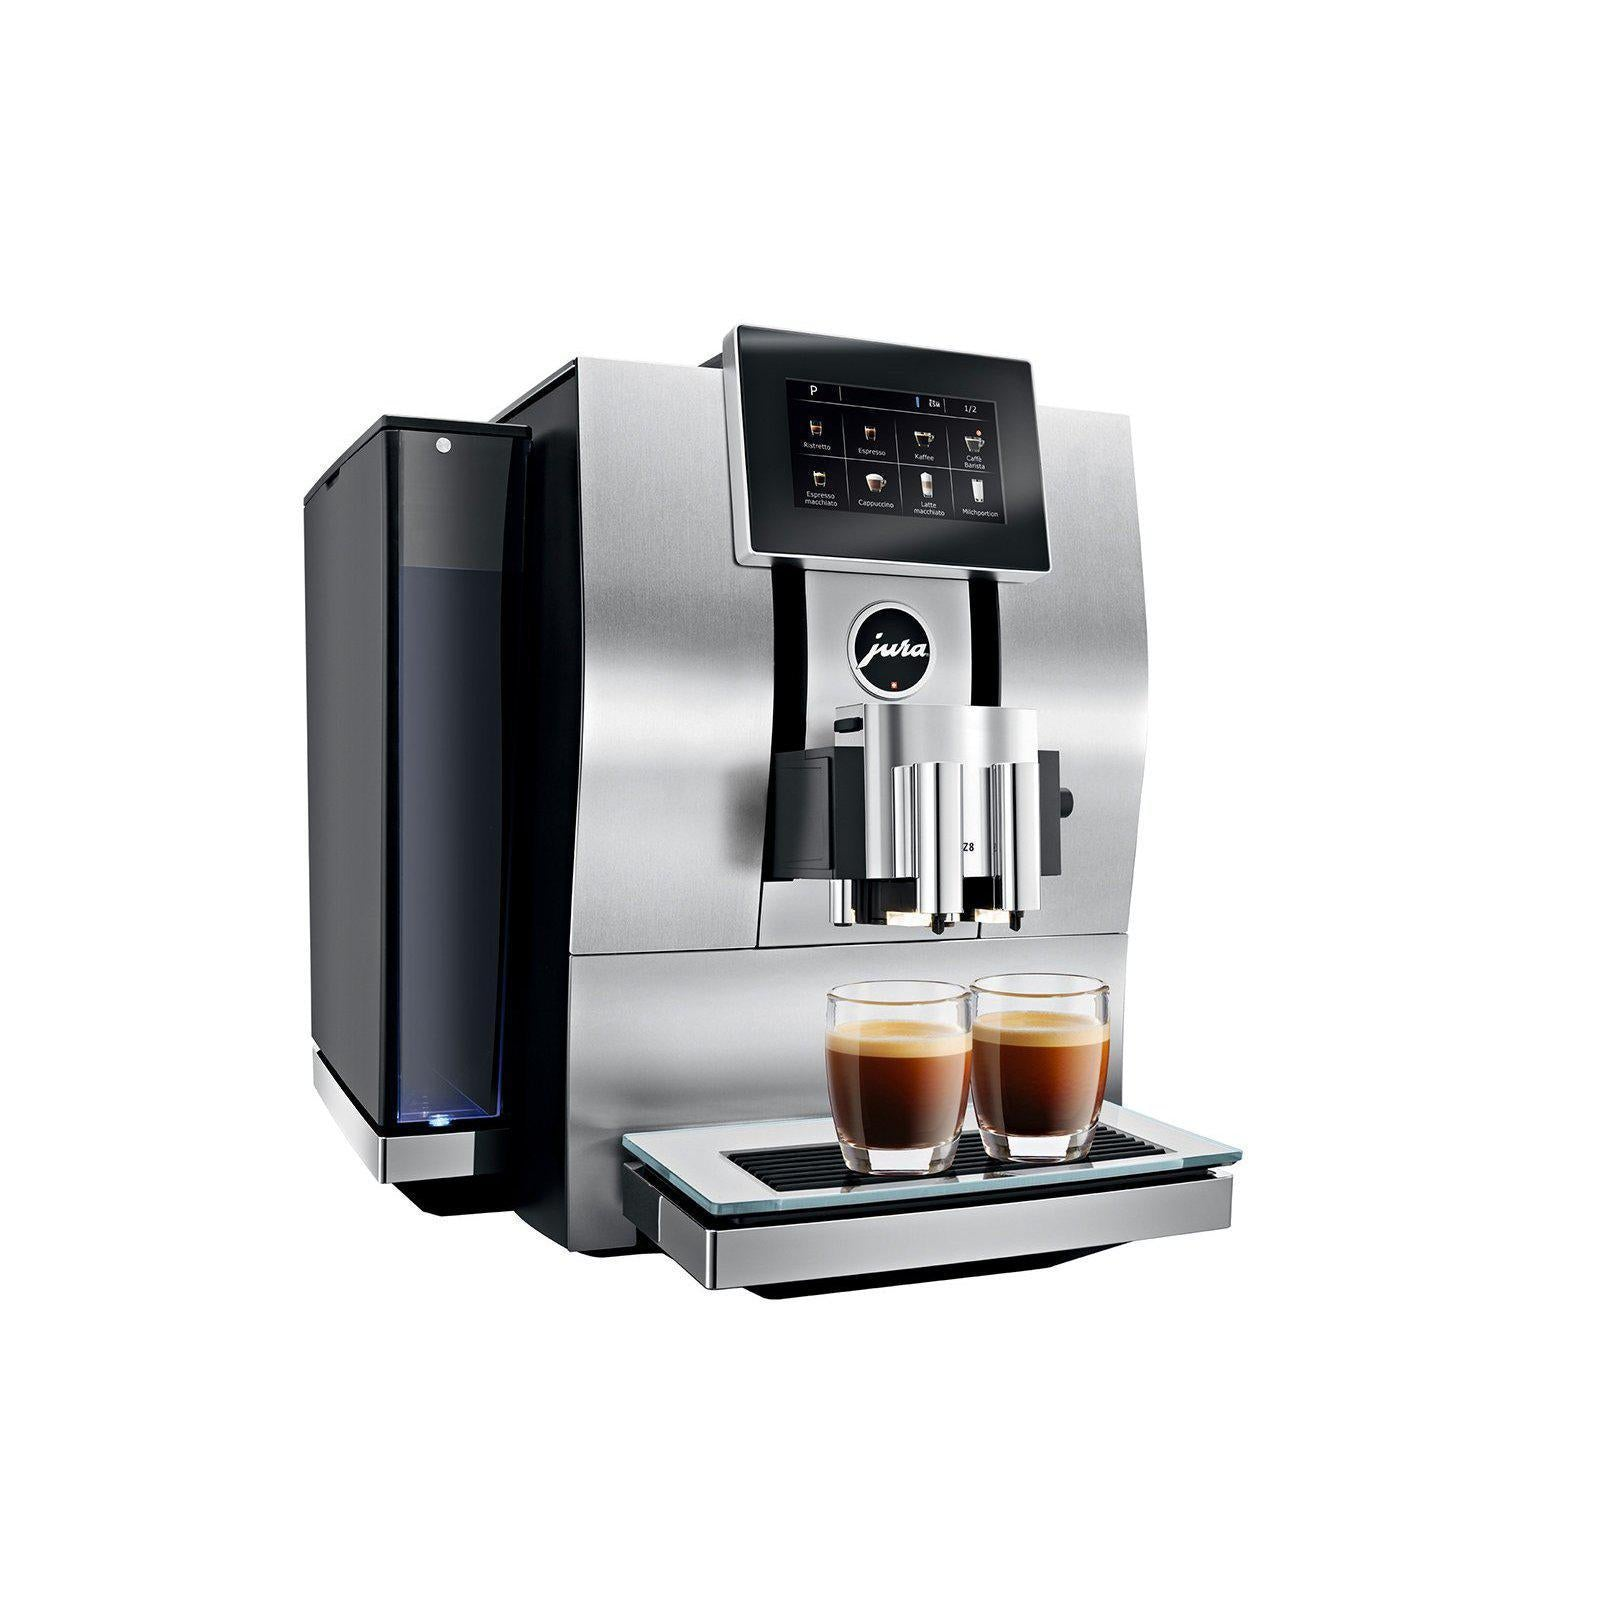 Jura Z8 Espresso Machine Canada Side View